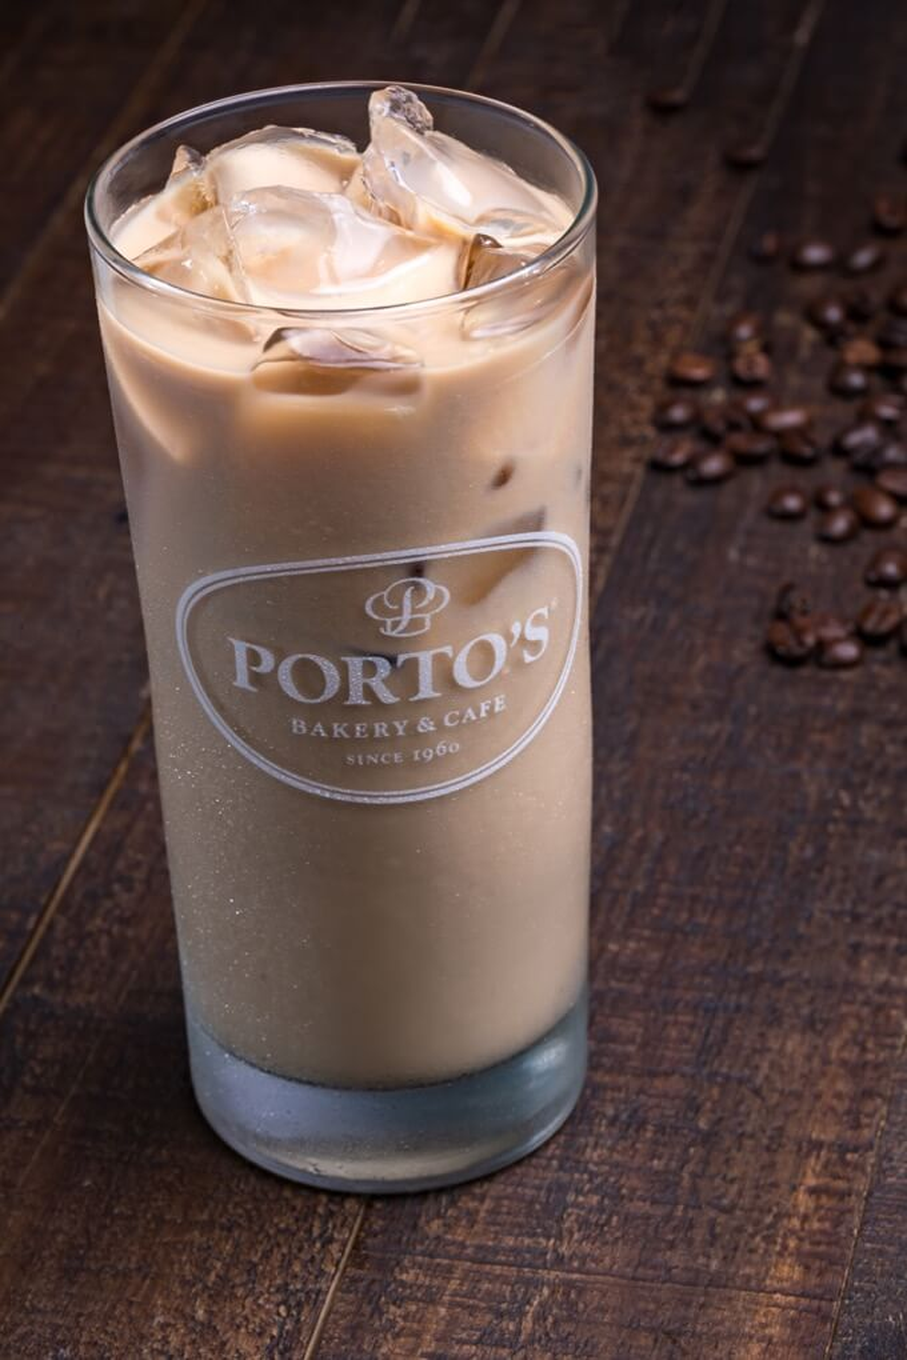 Porto's Iced Coffee